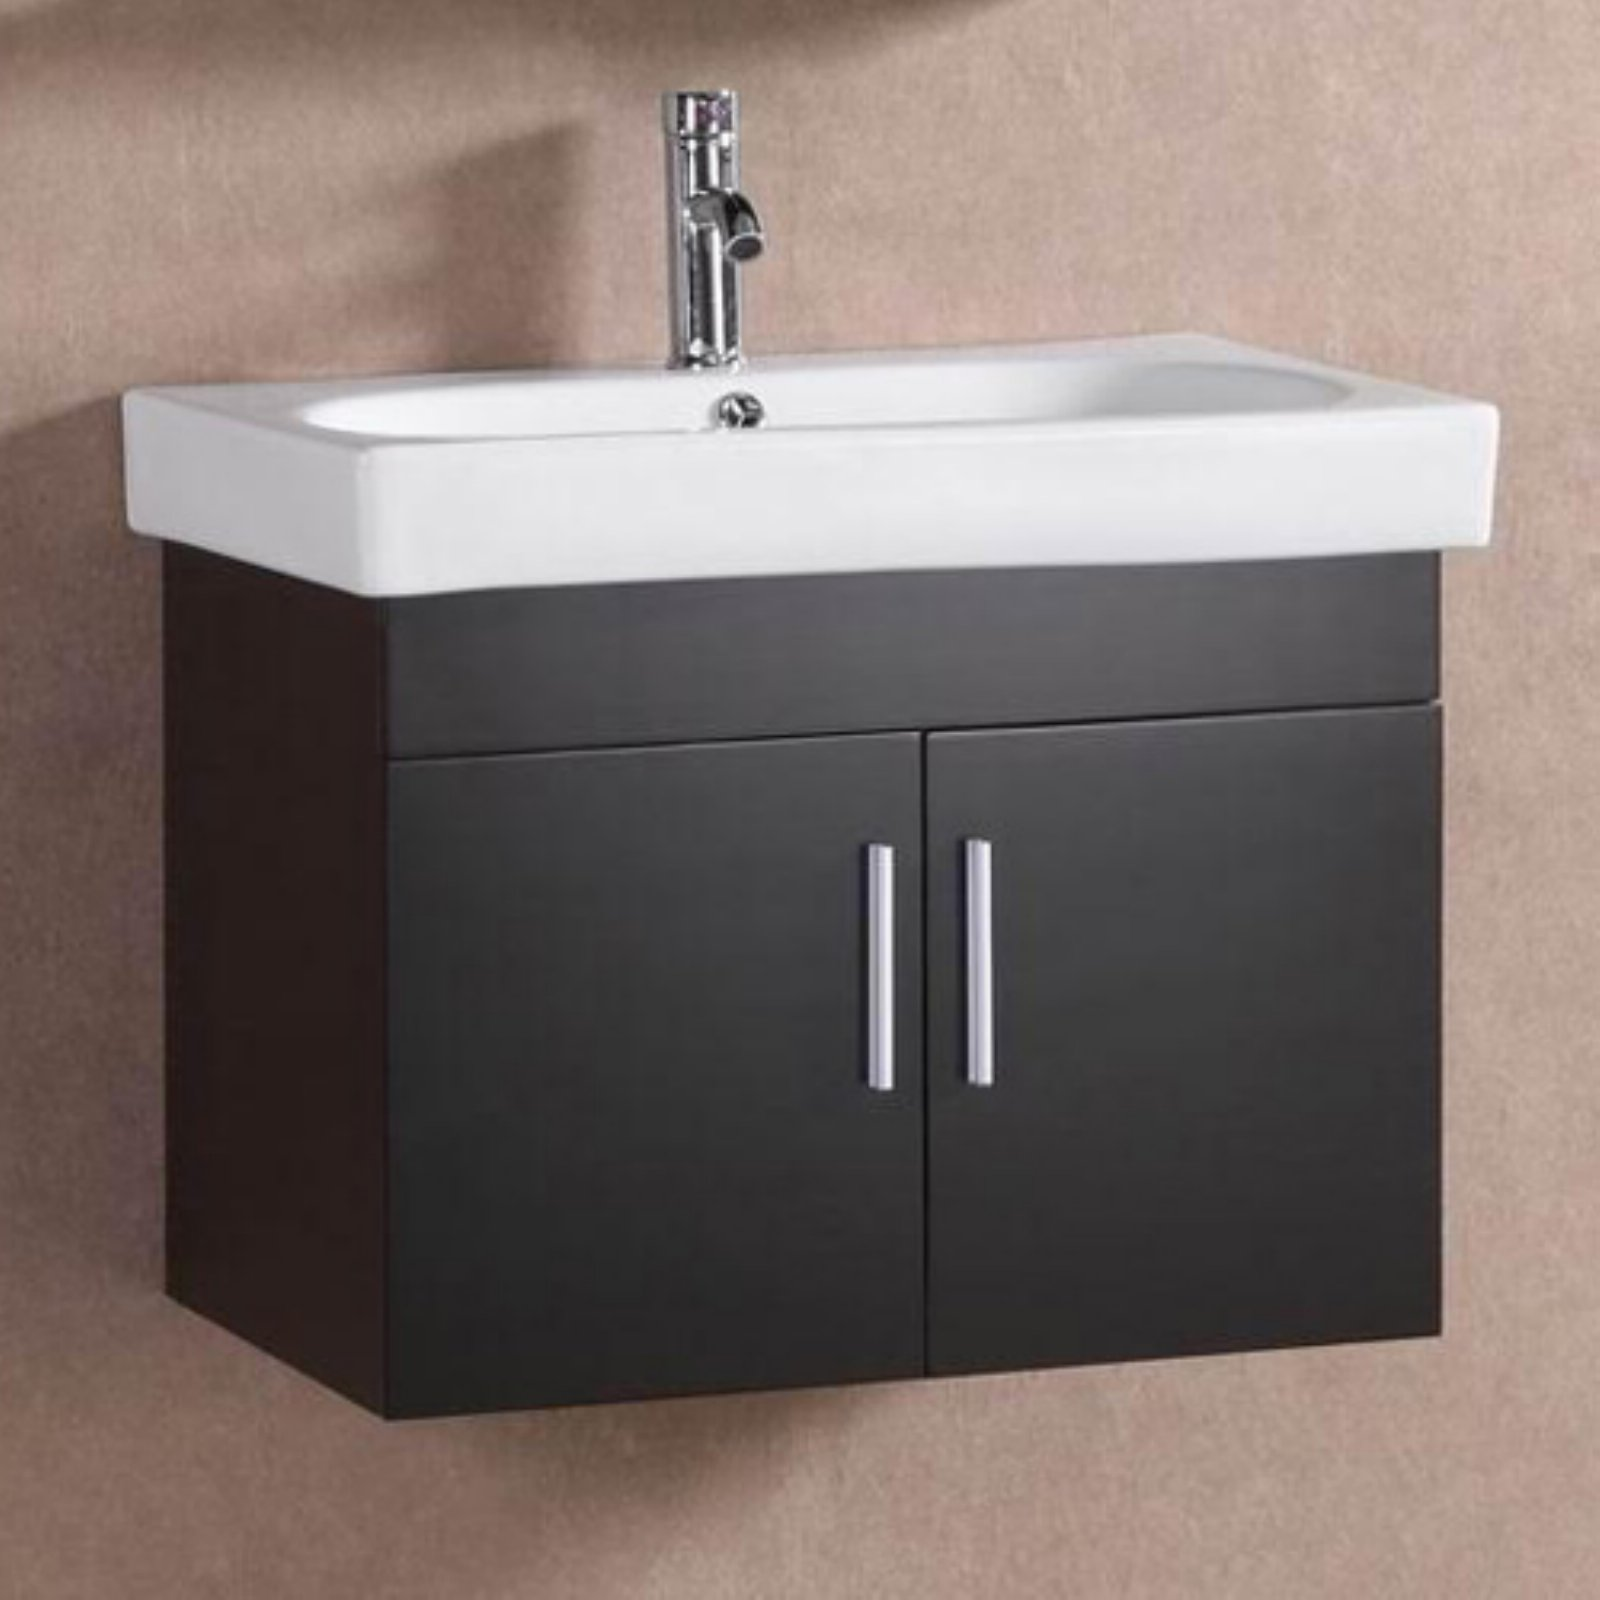 Belvedere 28 in. Modern Floating Single Bathroom Vanity by Belvedere Bath LLC